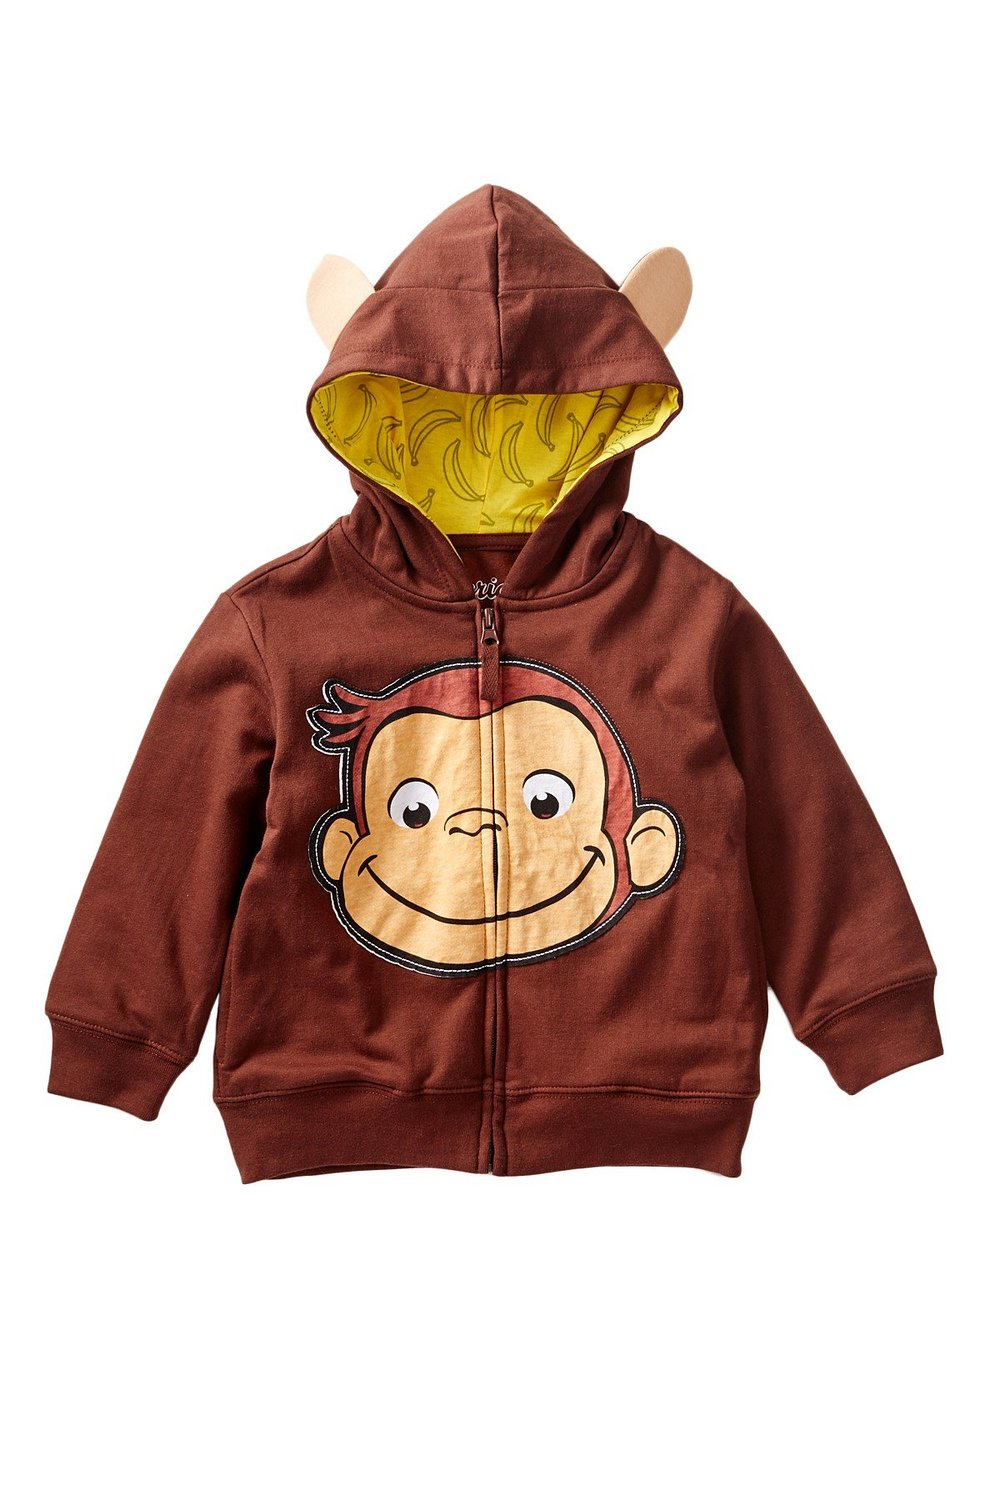 Curious George Little Boys Toddler Character Hoodie